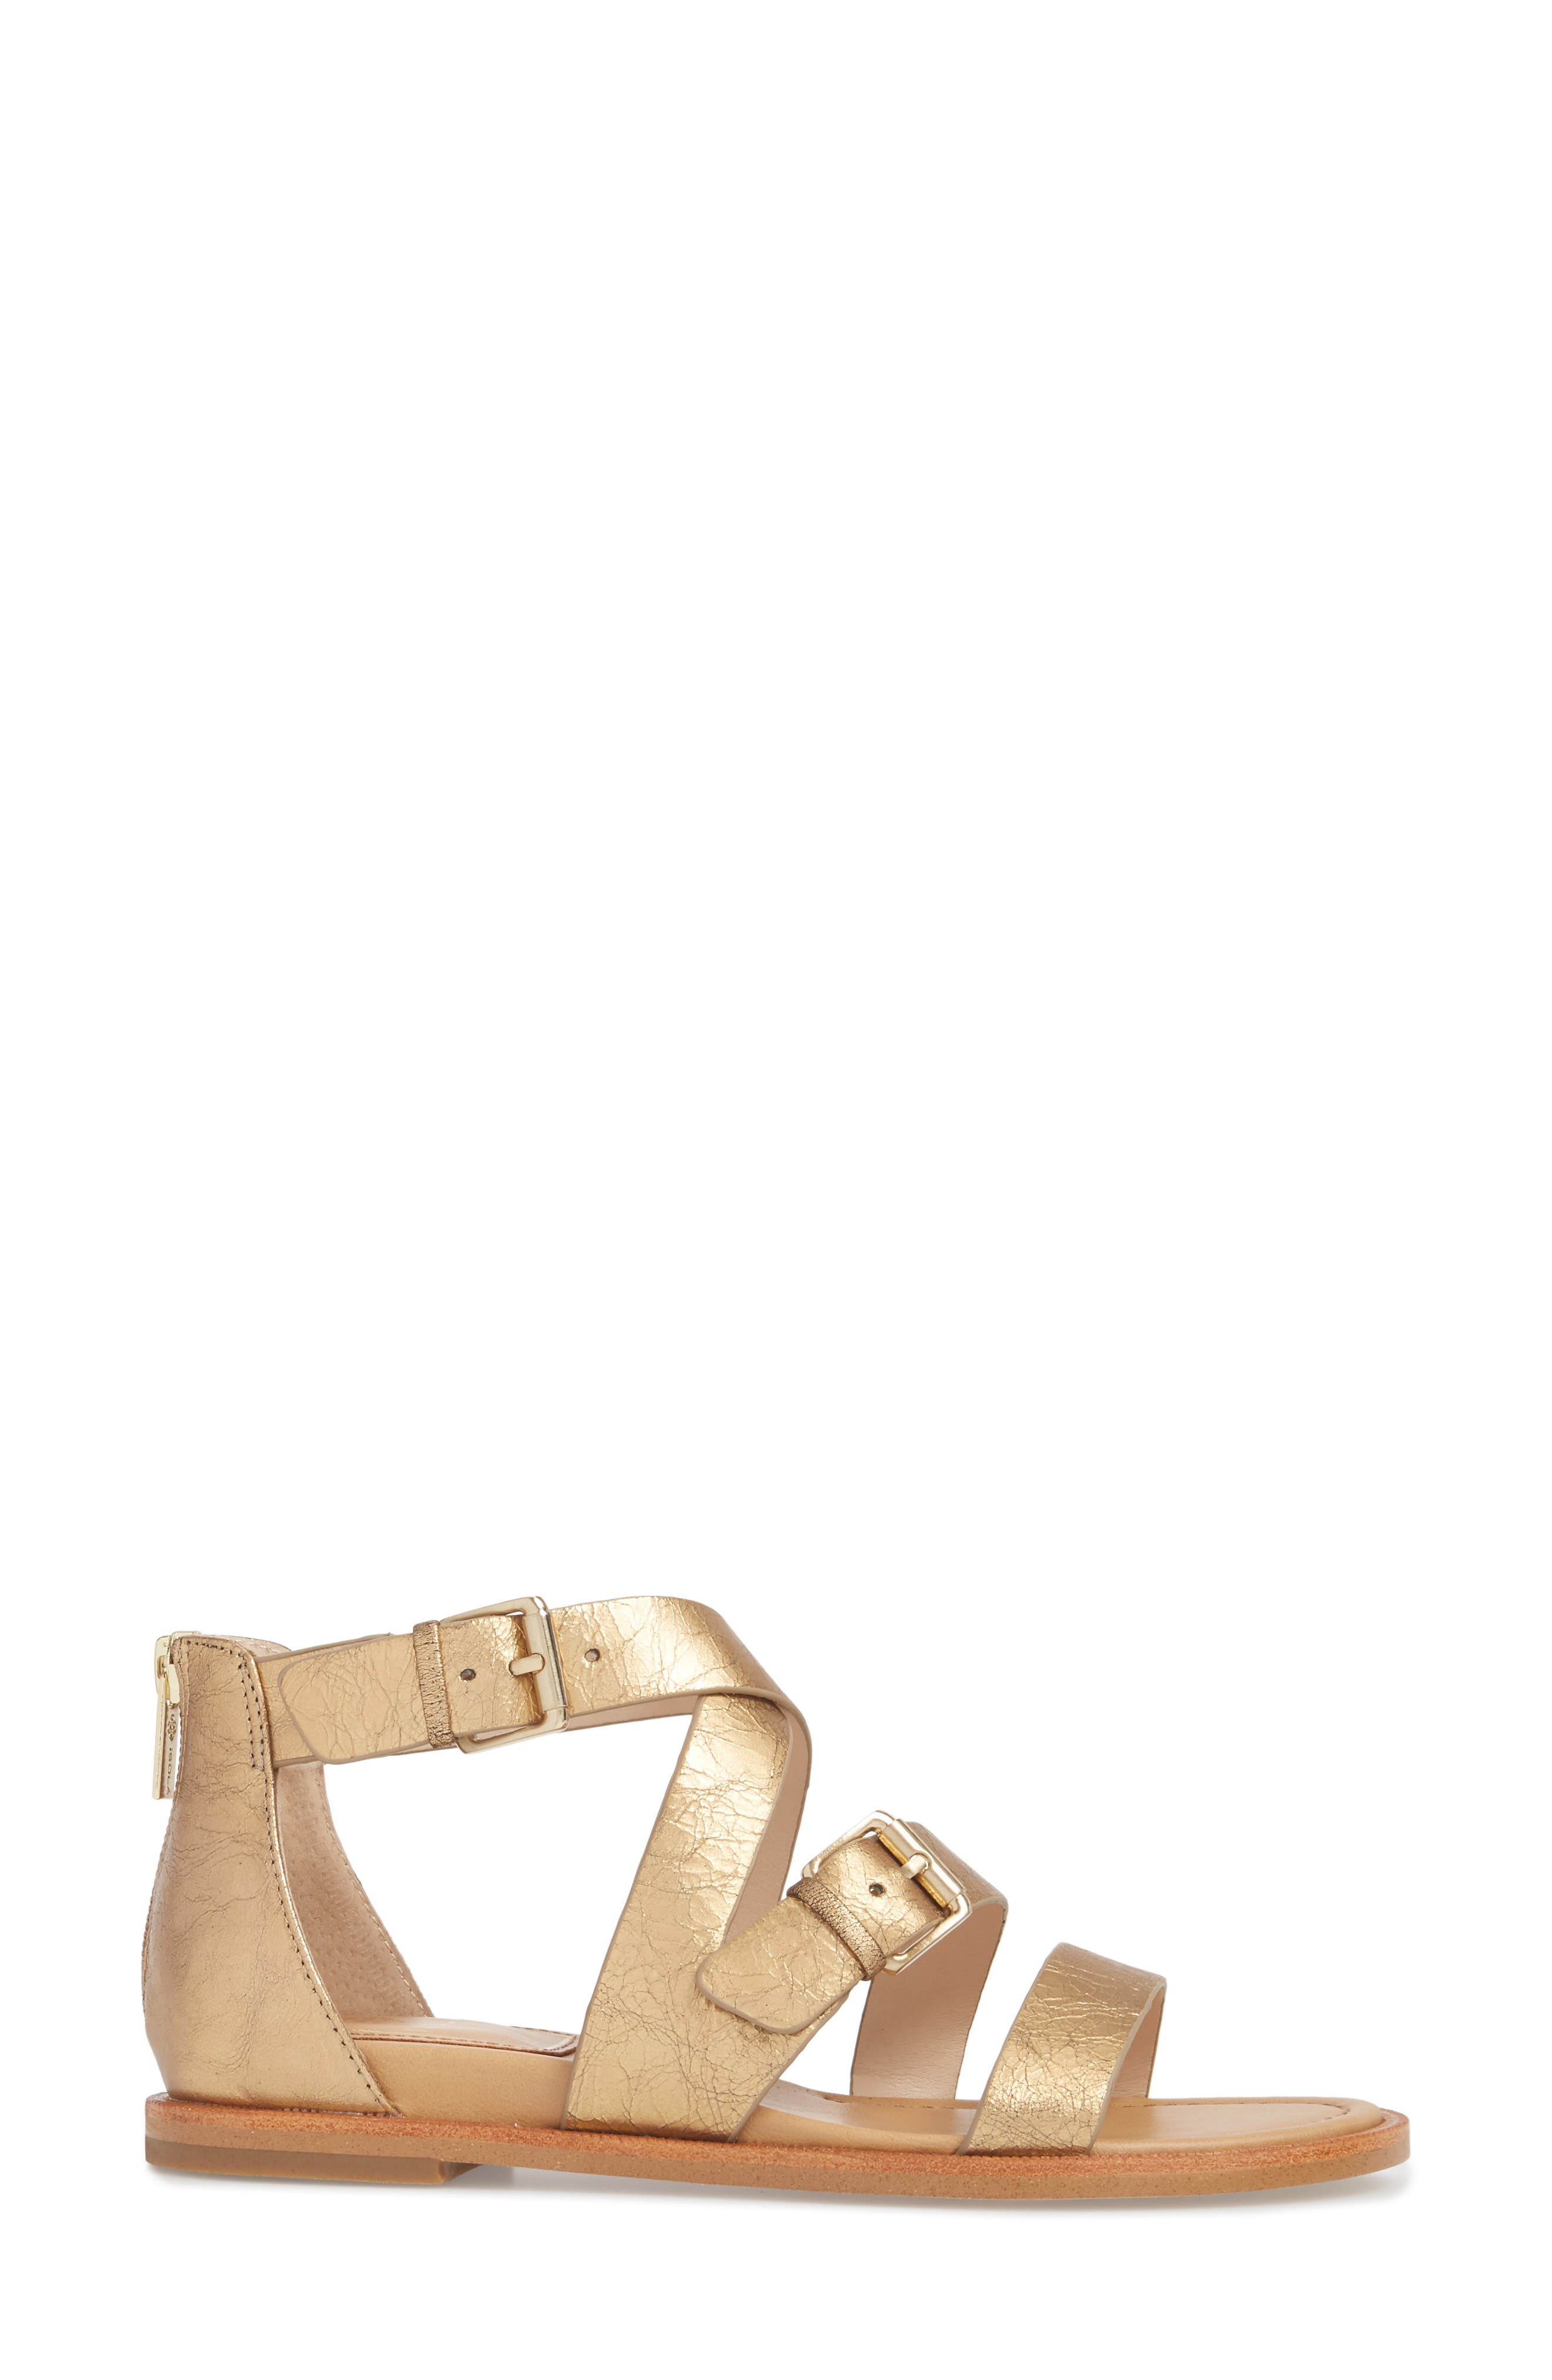 Isola Sharni Sandal,                             Alternate thumbnail 3, color,                             Old Gold Leather